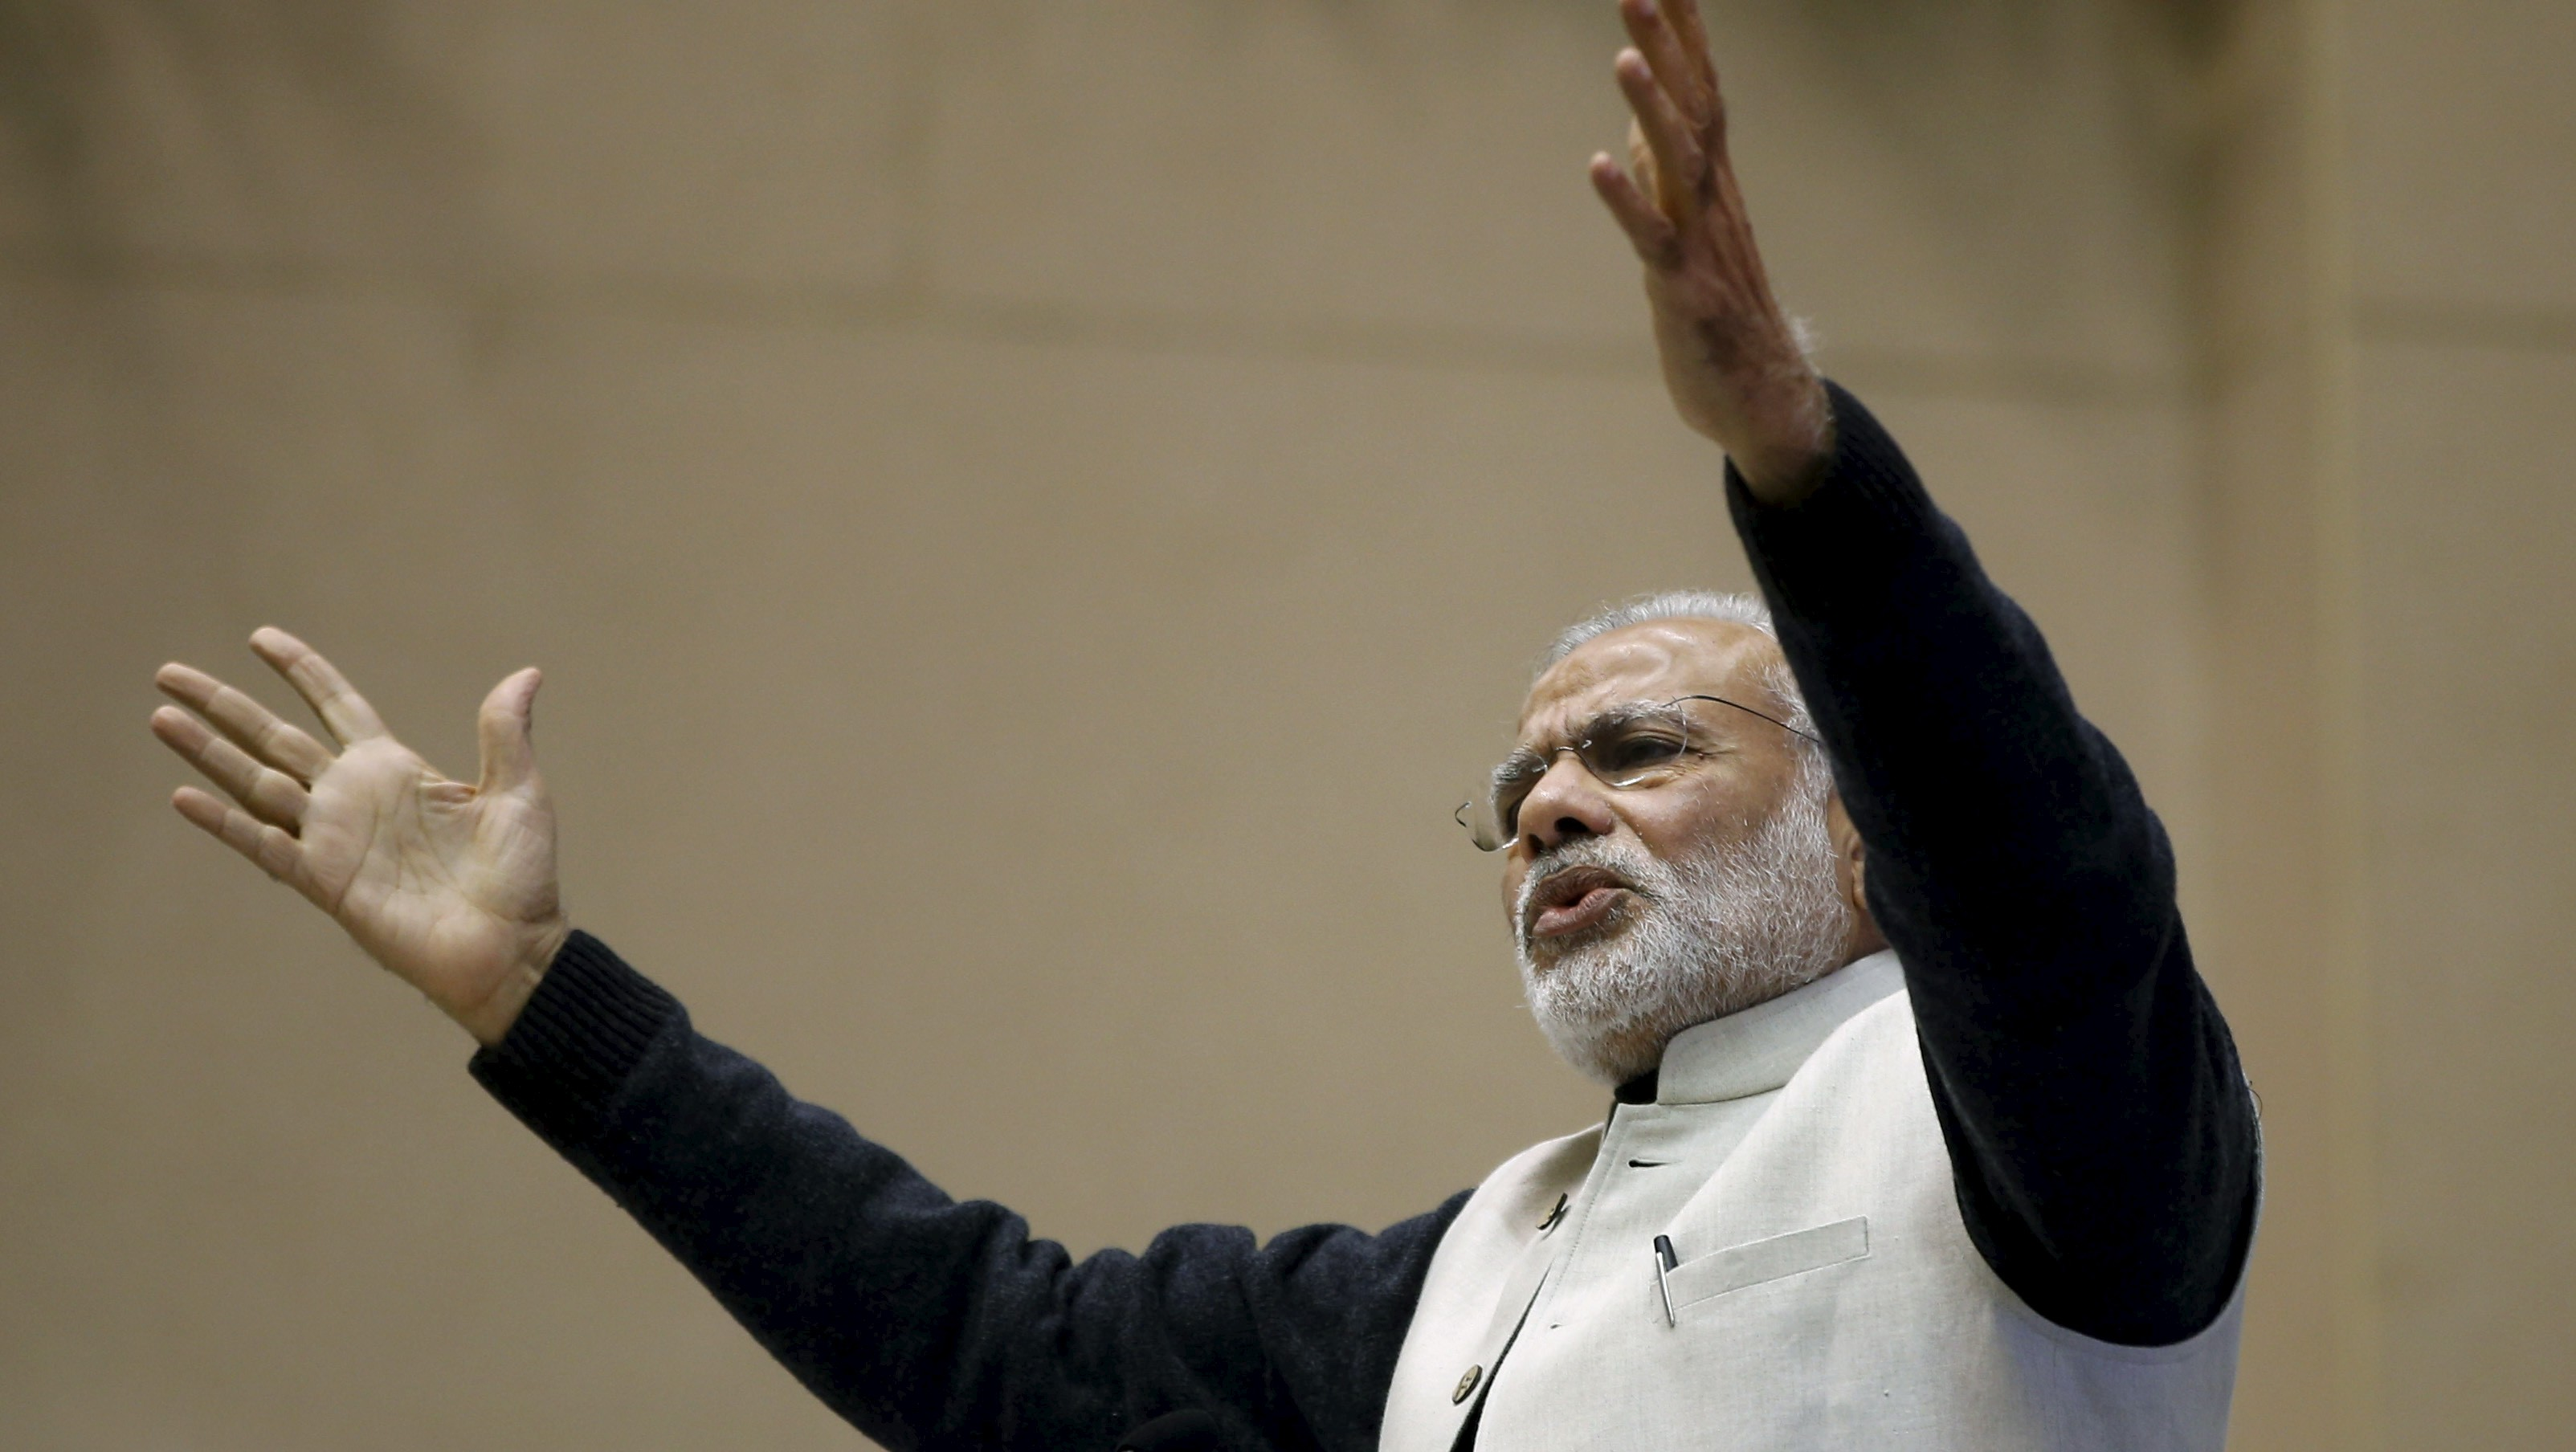 India's Prime Minister Narendra Modi gestures as he addresses a gathering during a conference of start-up businesses in New Delhi